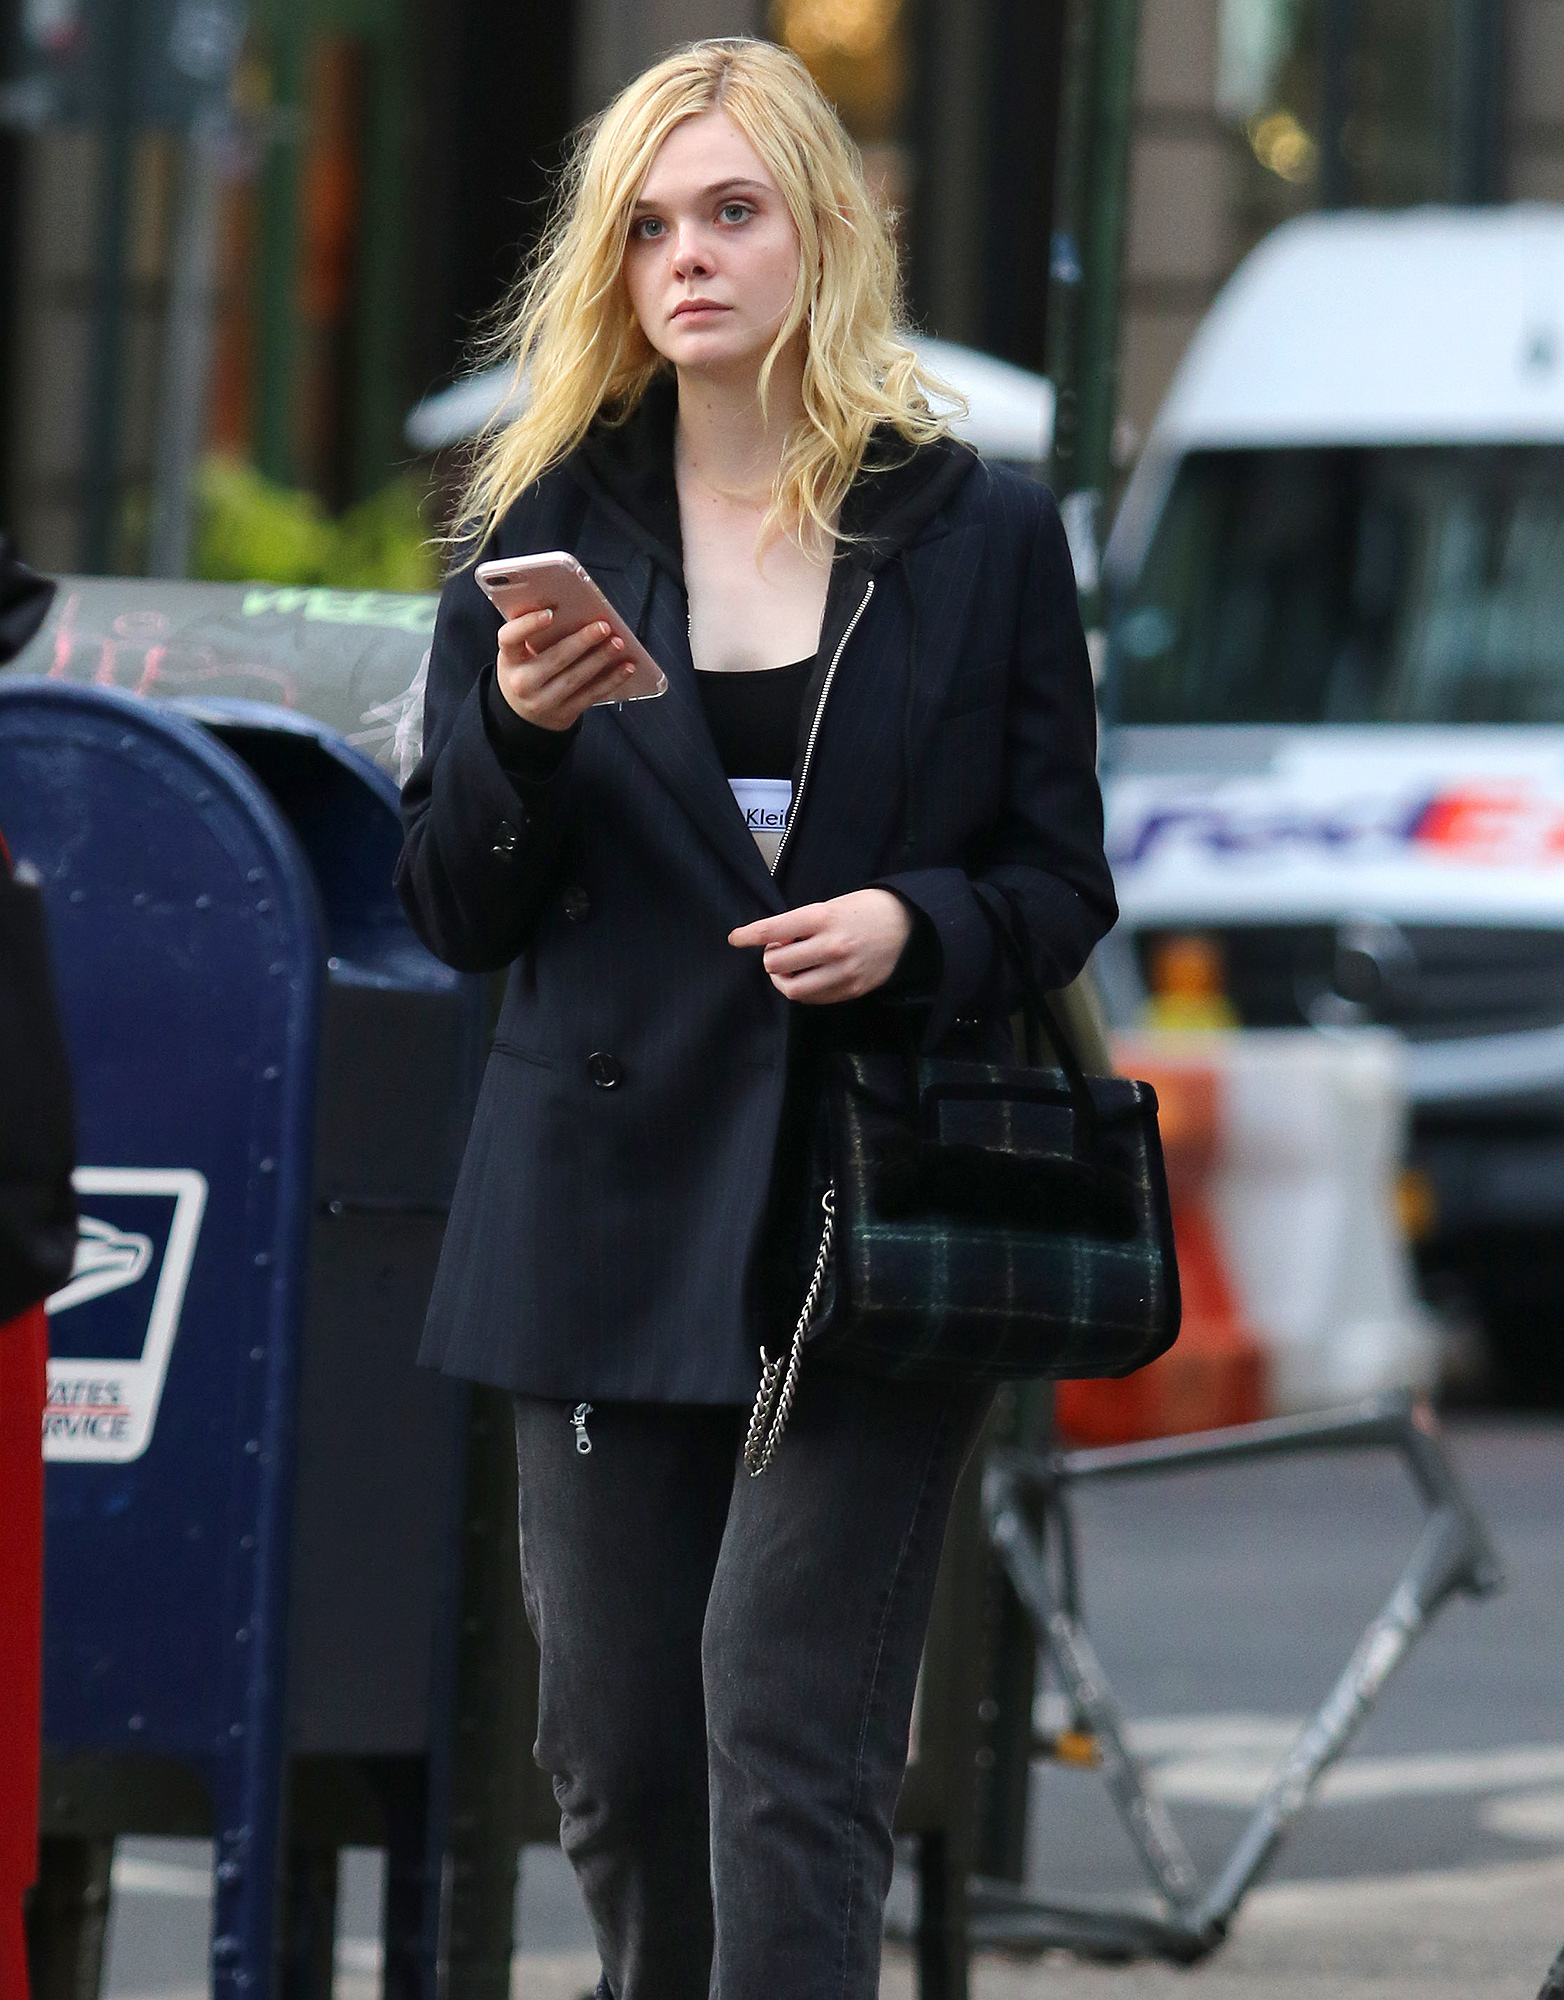 Elle Fanning busy texting in NYC